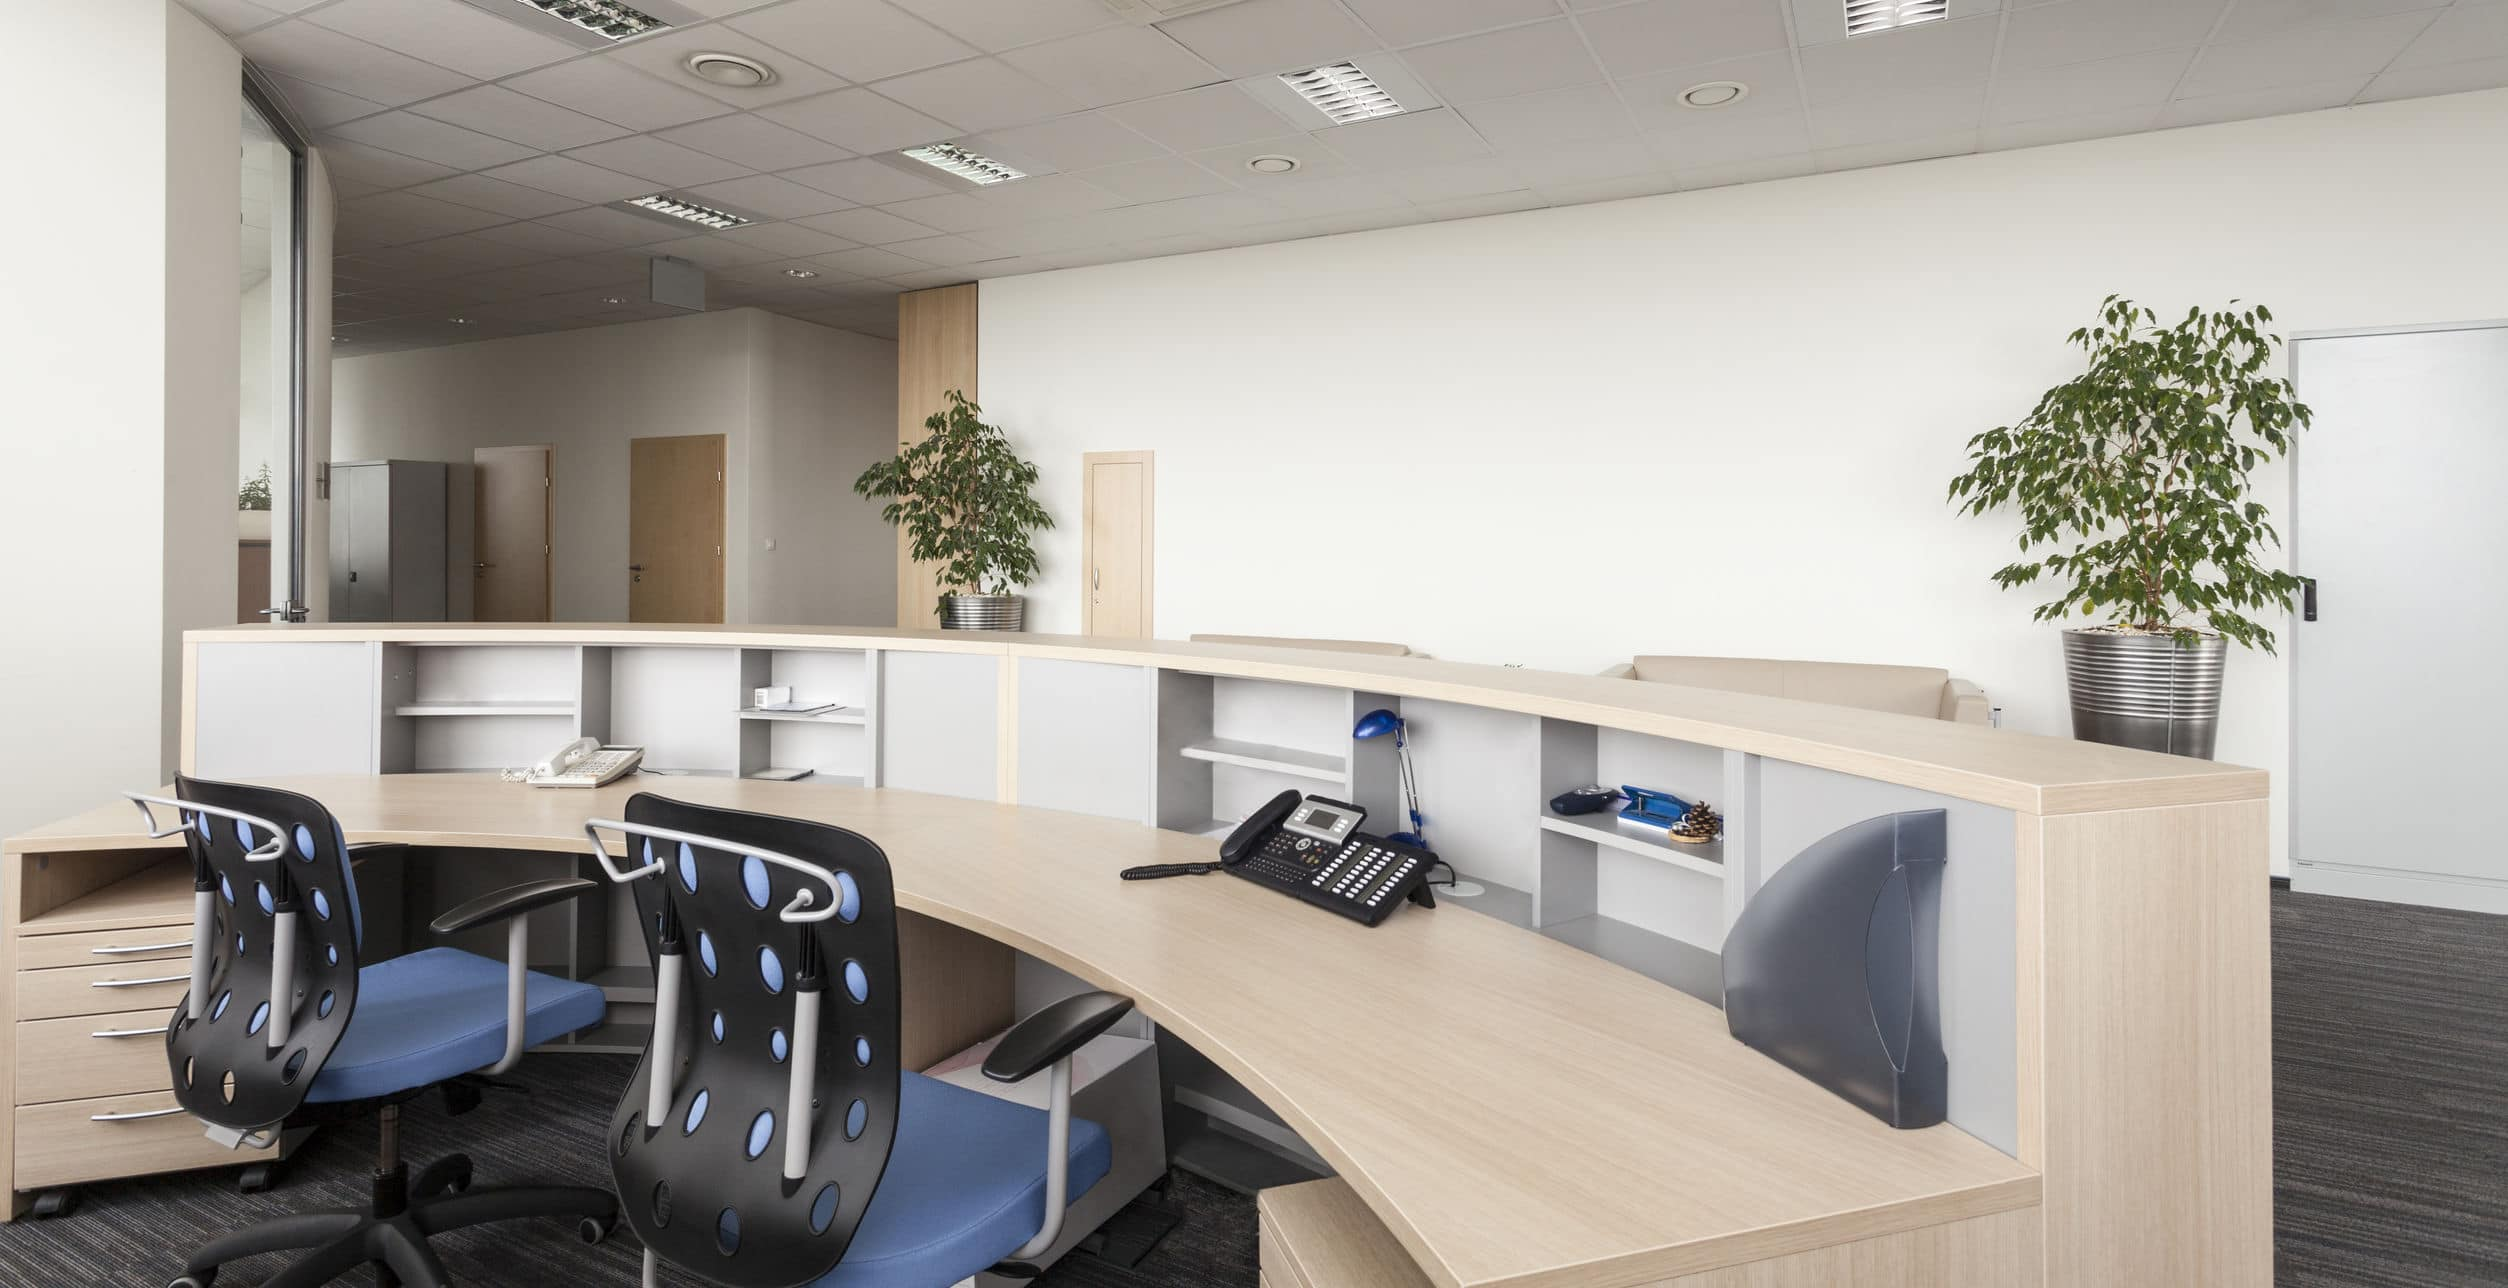 Reception room in an office building